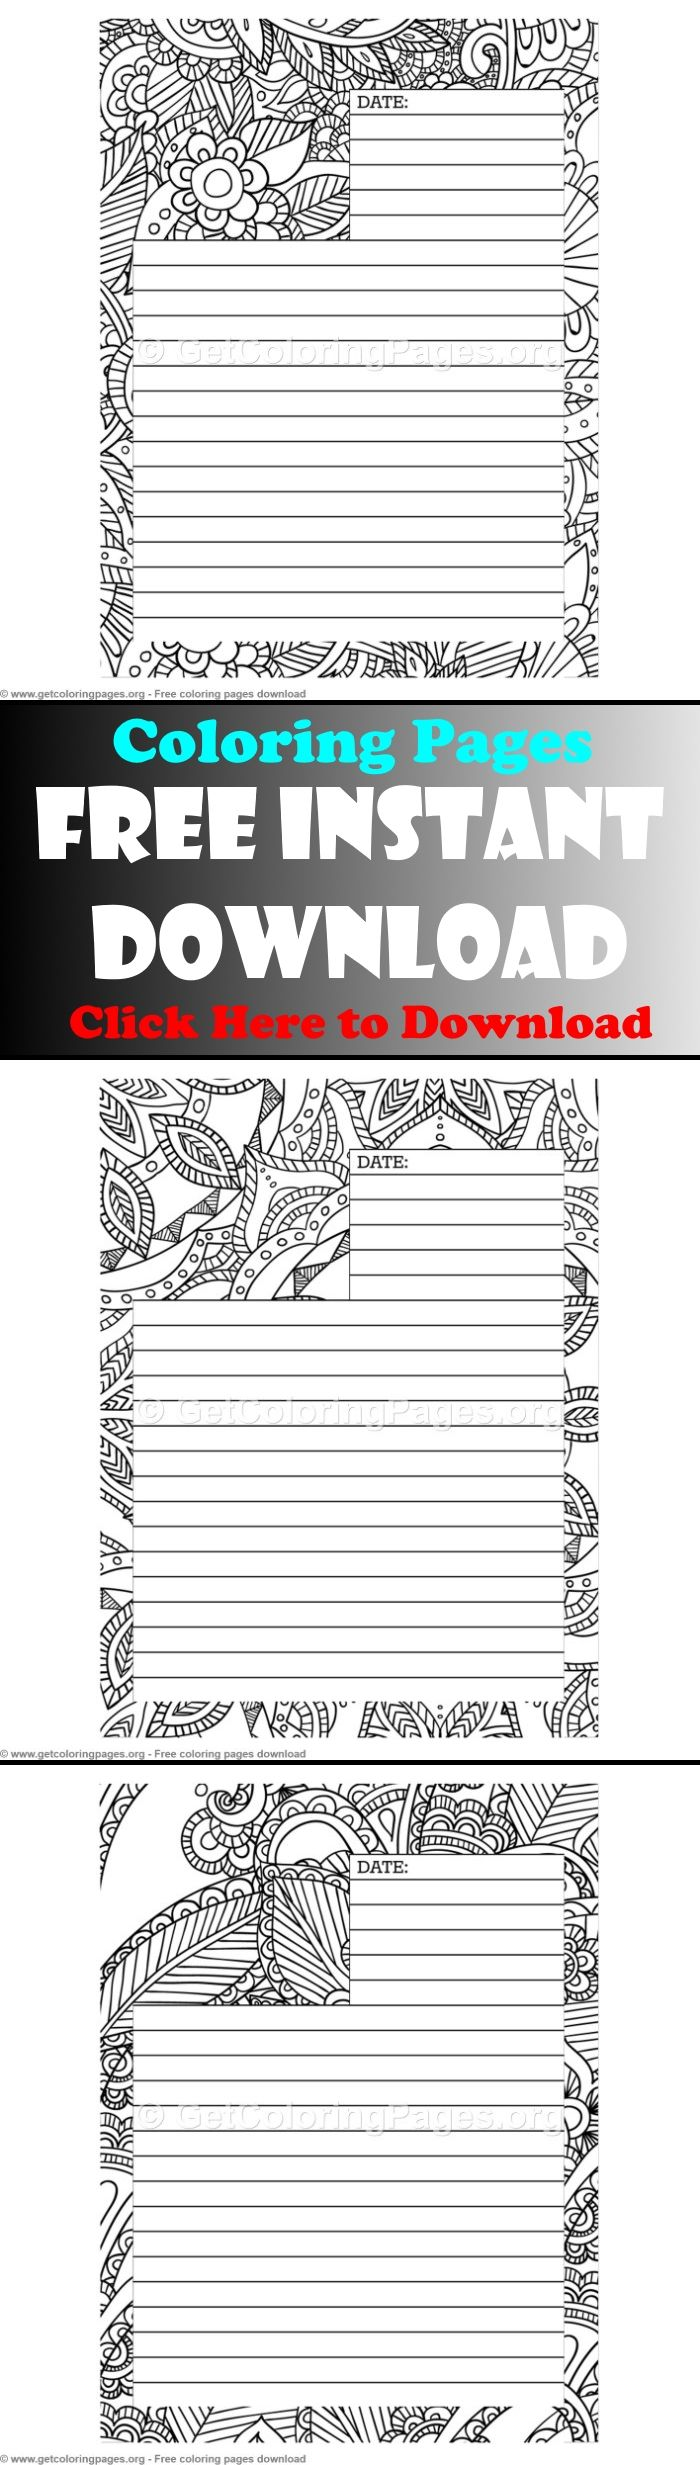 Free Journal Pages Template Coloring Journal Pages Journal Pages Ideas Journal Pages Printable J Coloring Journal Journal Pages Printable Journal Pages